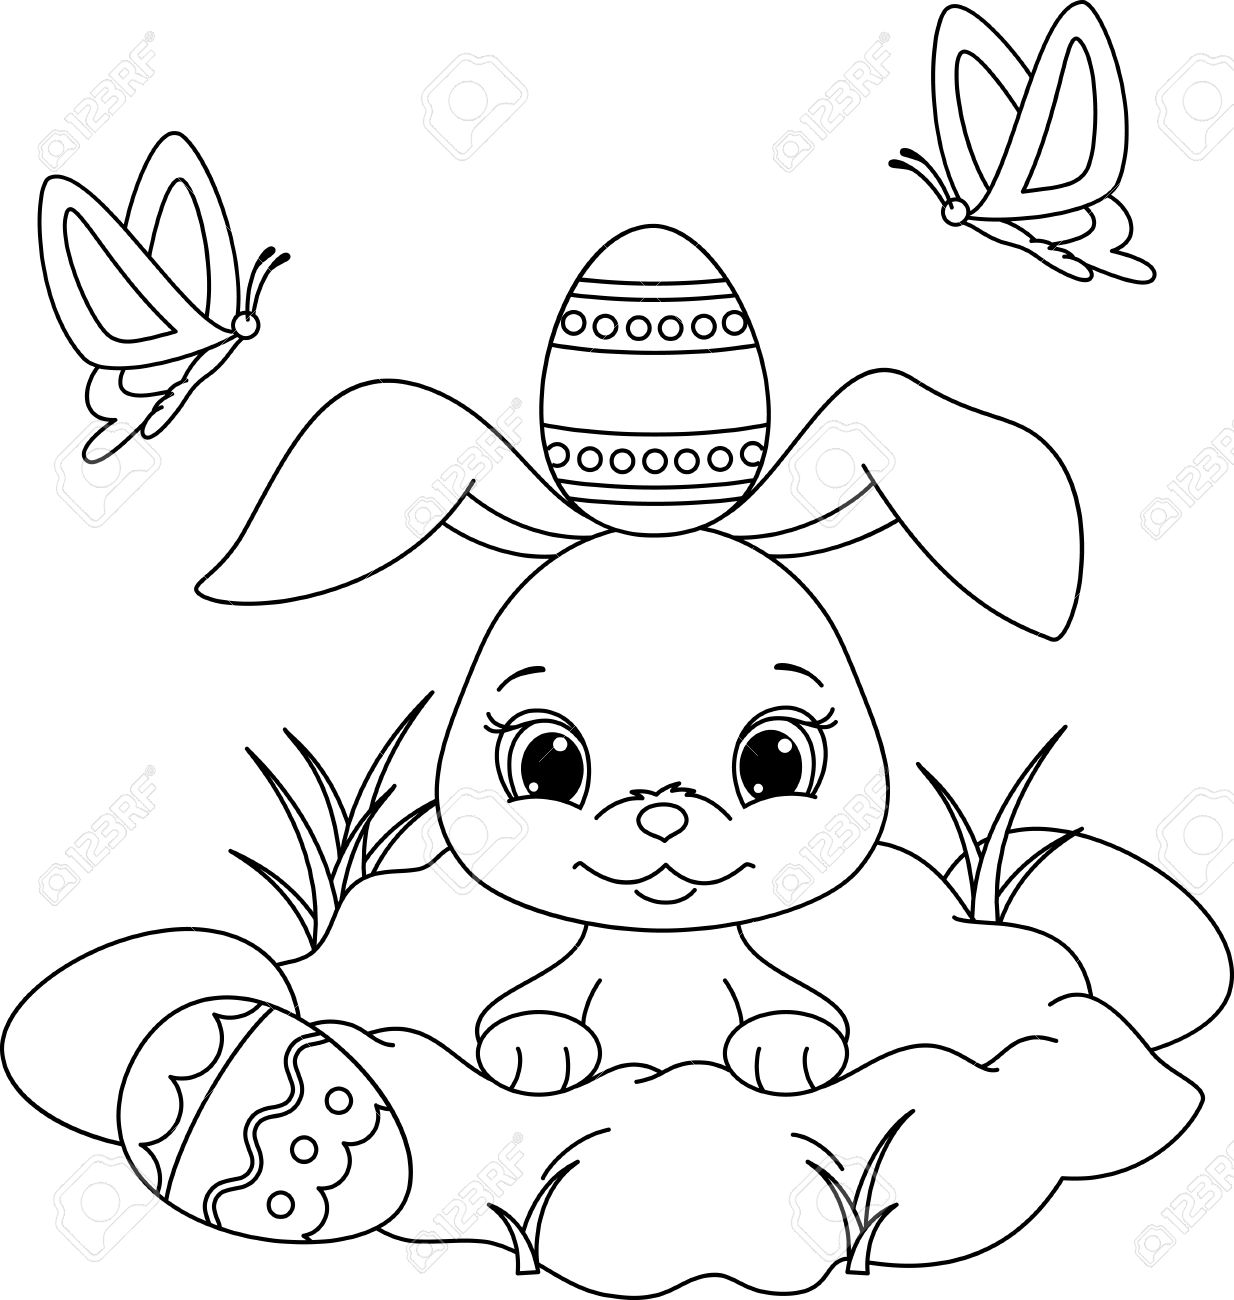 Easter Bunny Peeking Out Of A Hole. Coloring Page Royalty Free ...